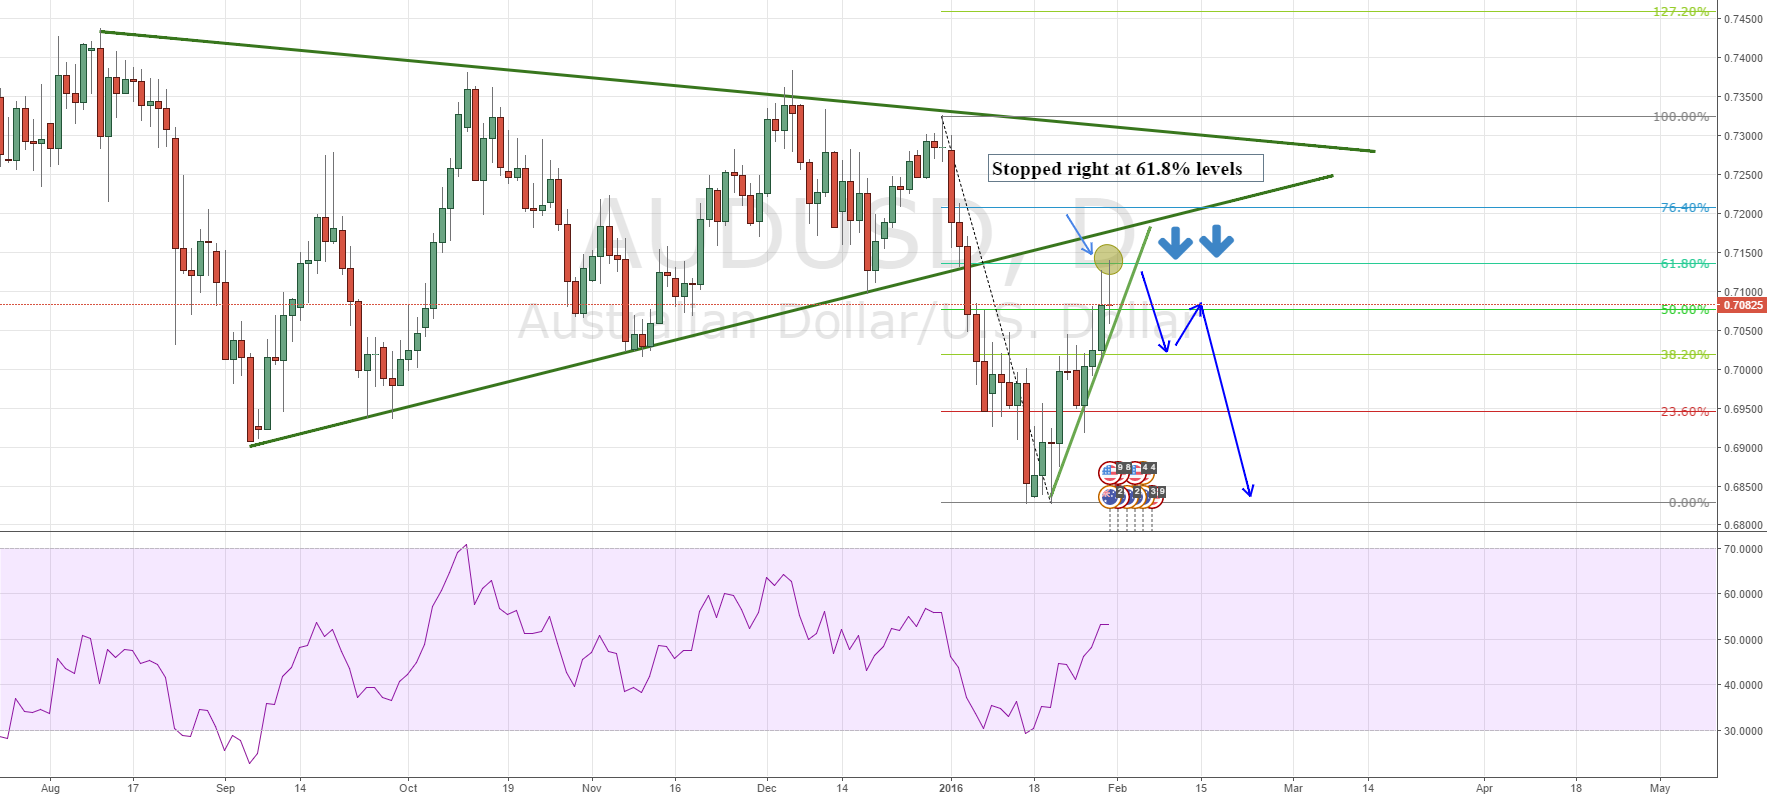 AUDUSD finally heading back down?